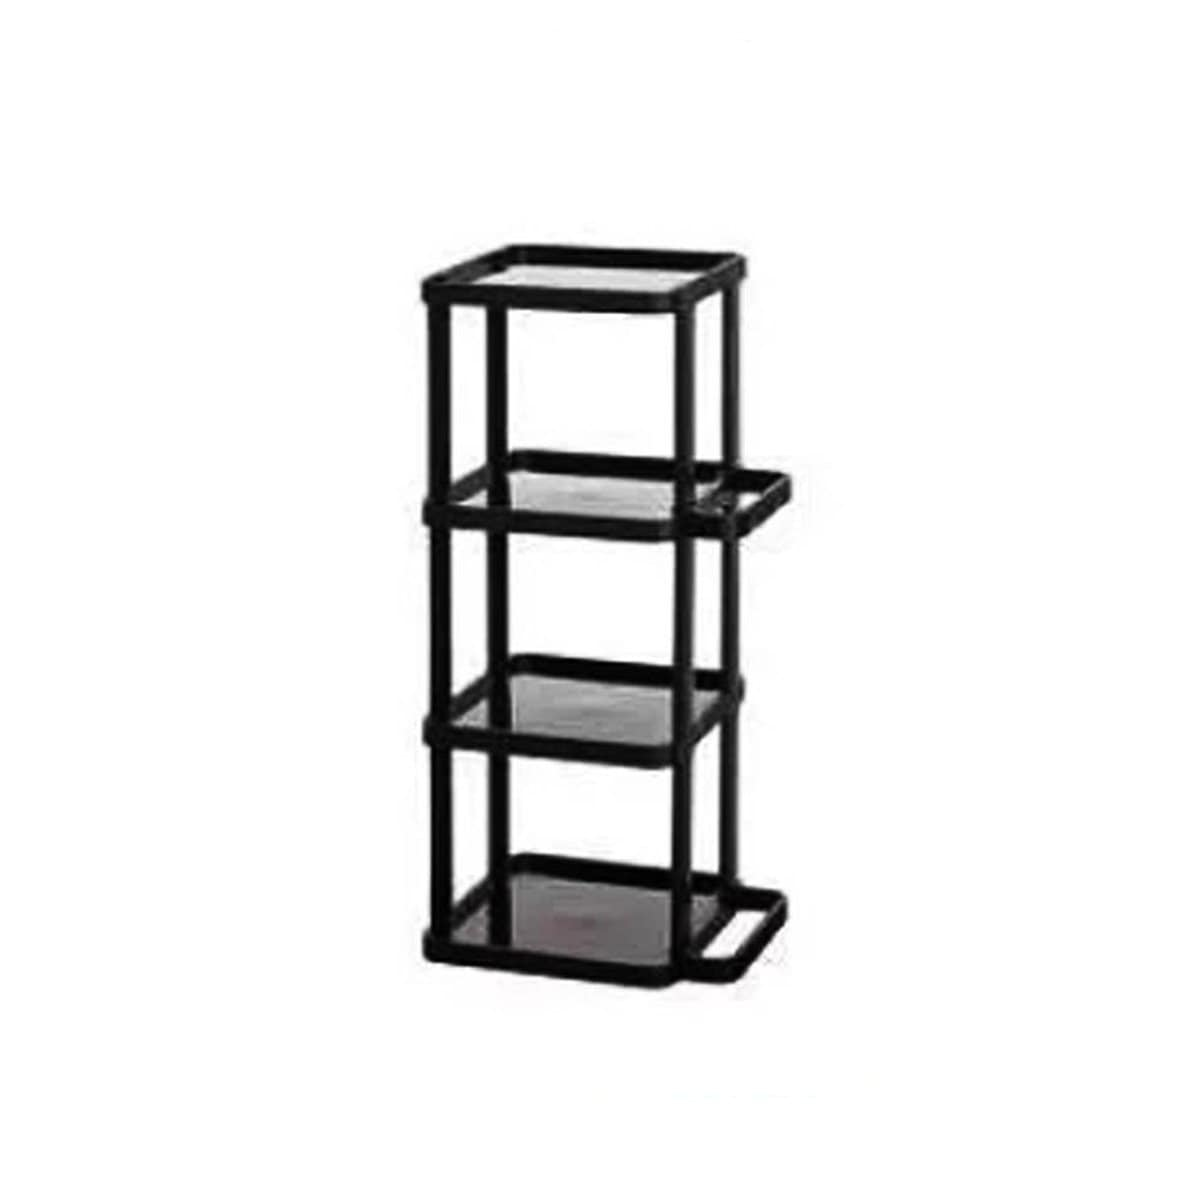 Japanese Plastic Shoe Rack 4 Tier Black